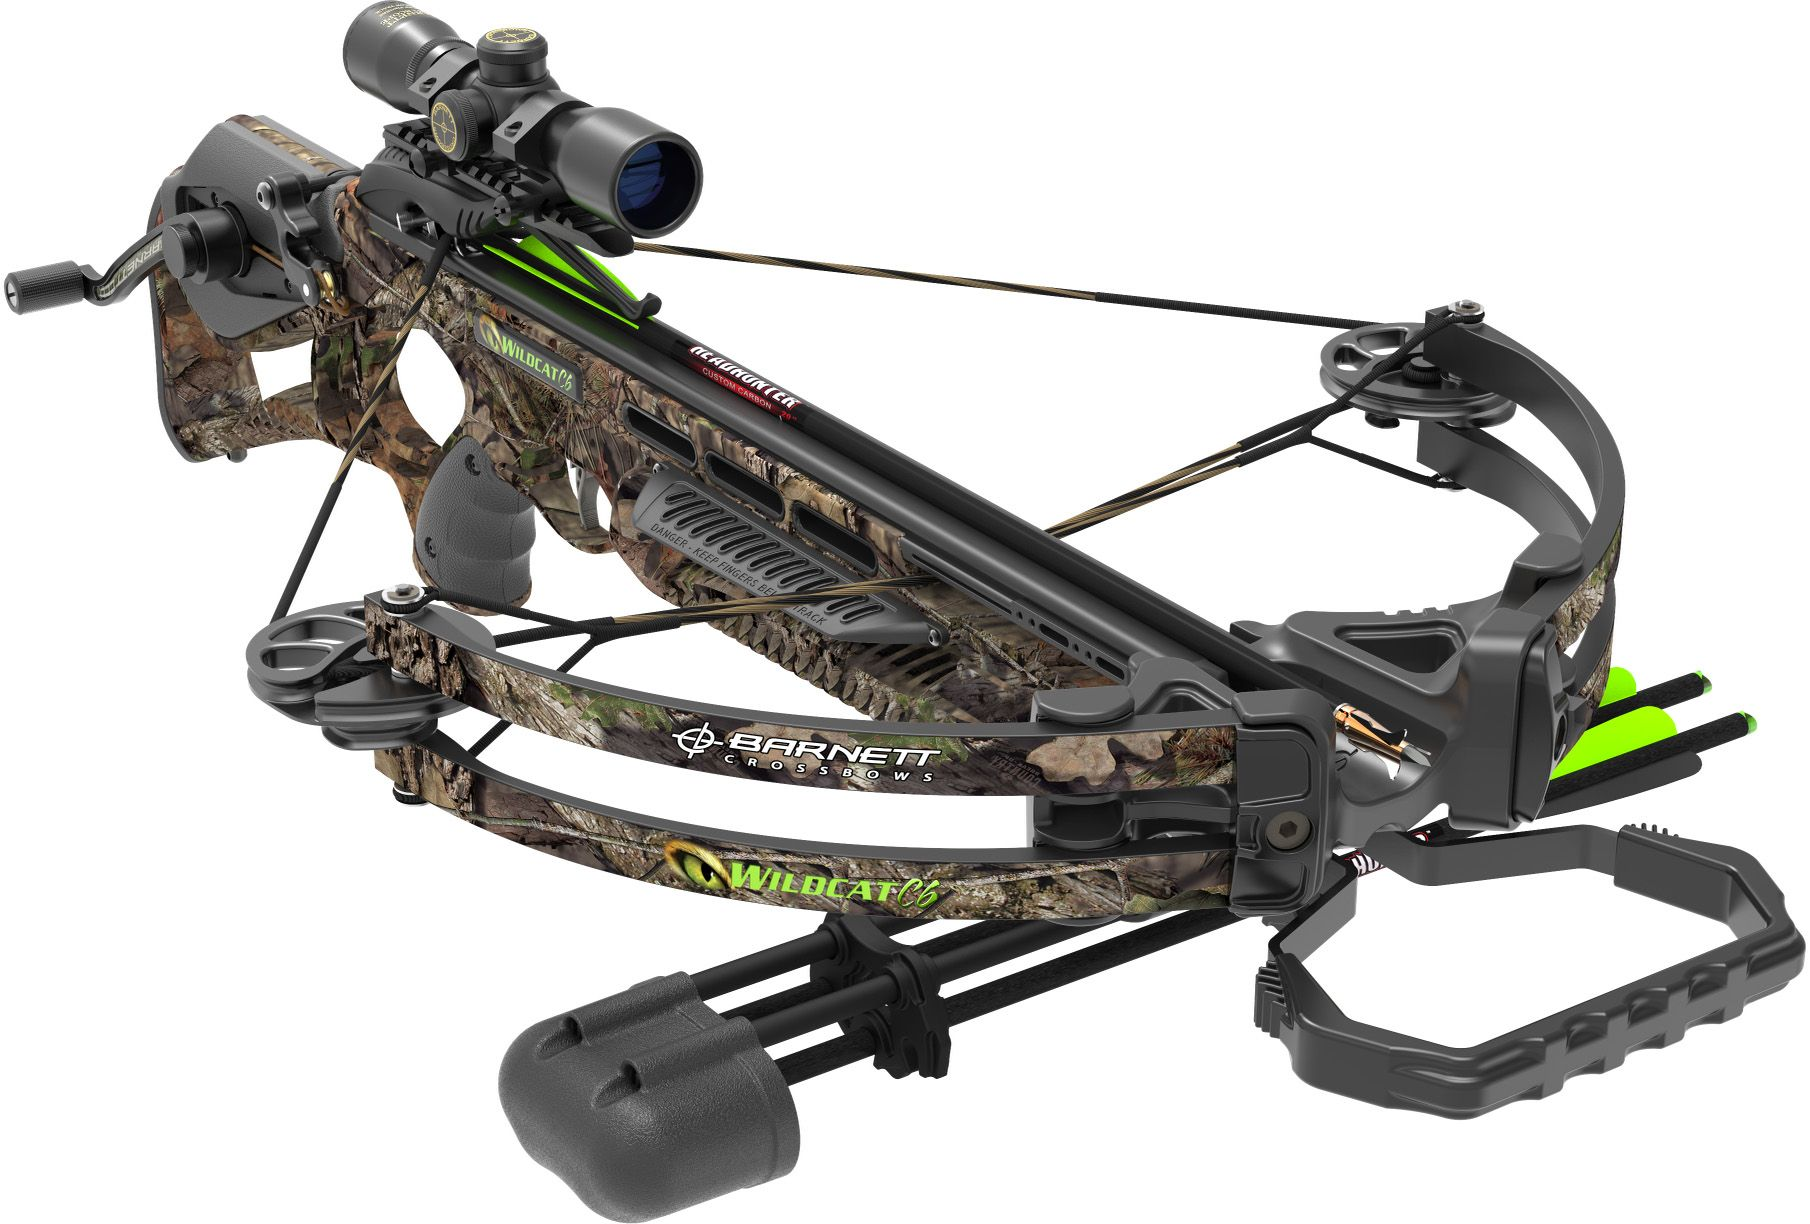 Barnett Wildcat C6 - Crossbow Review